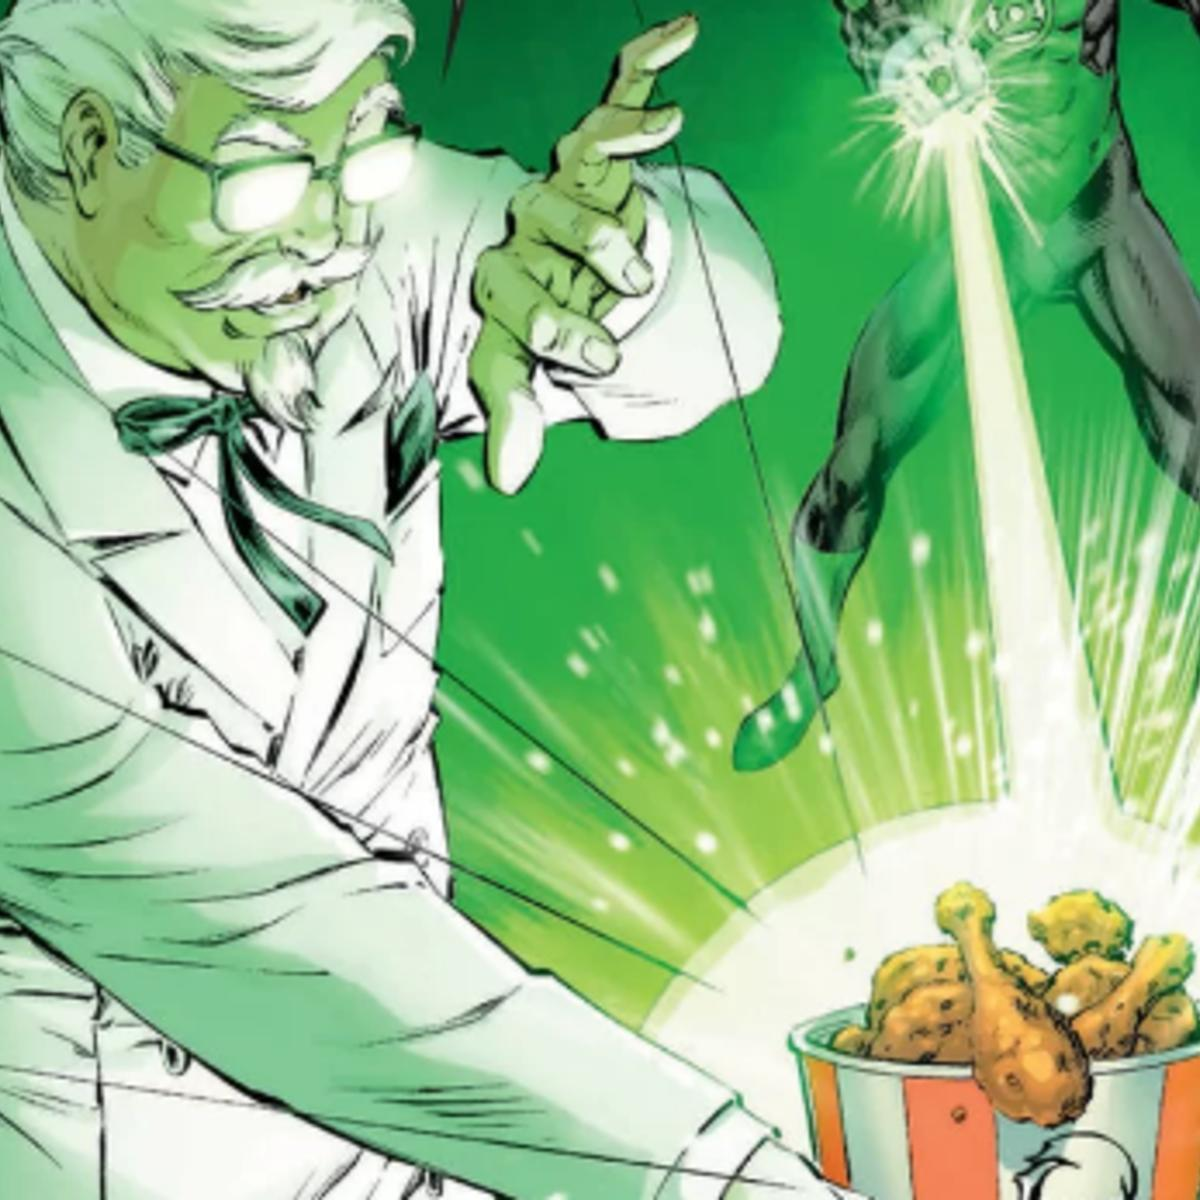 Syfy green lanterncolonel sanders sdcc crossover comic bite into this extra crispy green lanterncolonel sanders crossover comic altavistaventures Images